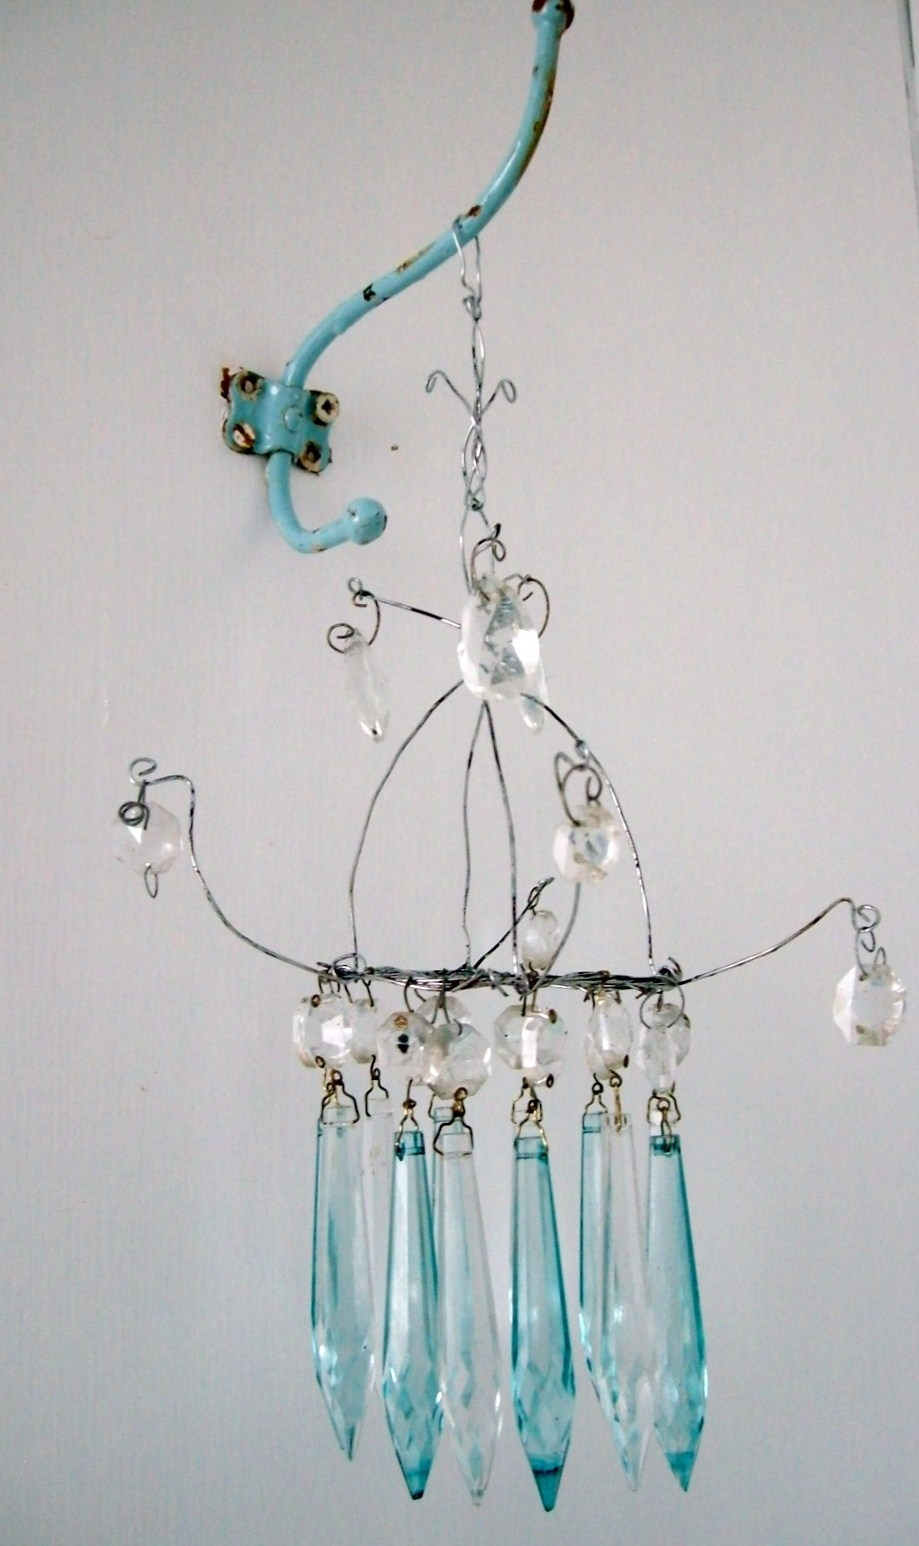 Diy mini chandelier things to make and do pinterest diy and diy mini chandelier arubaitofo Images